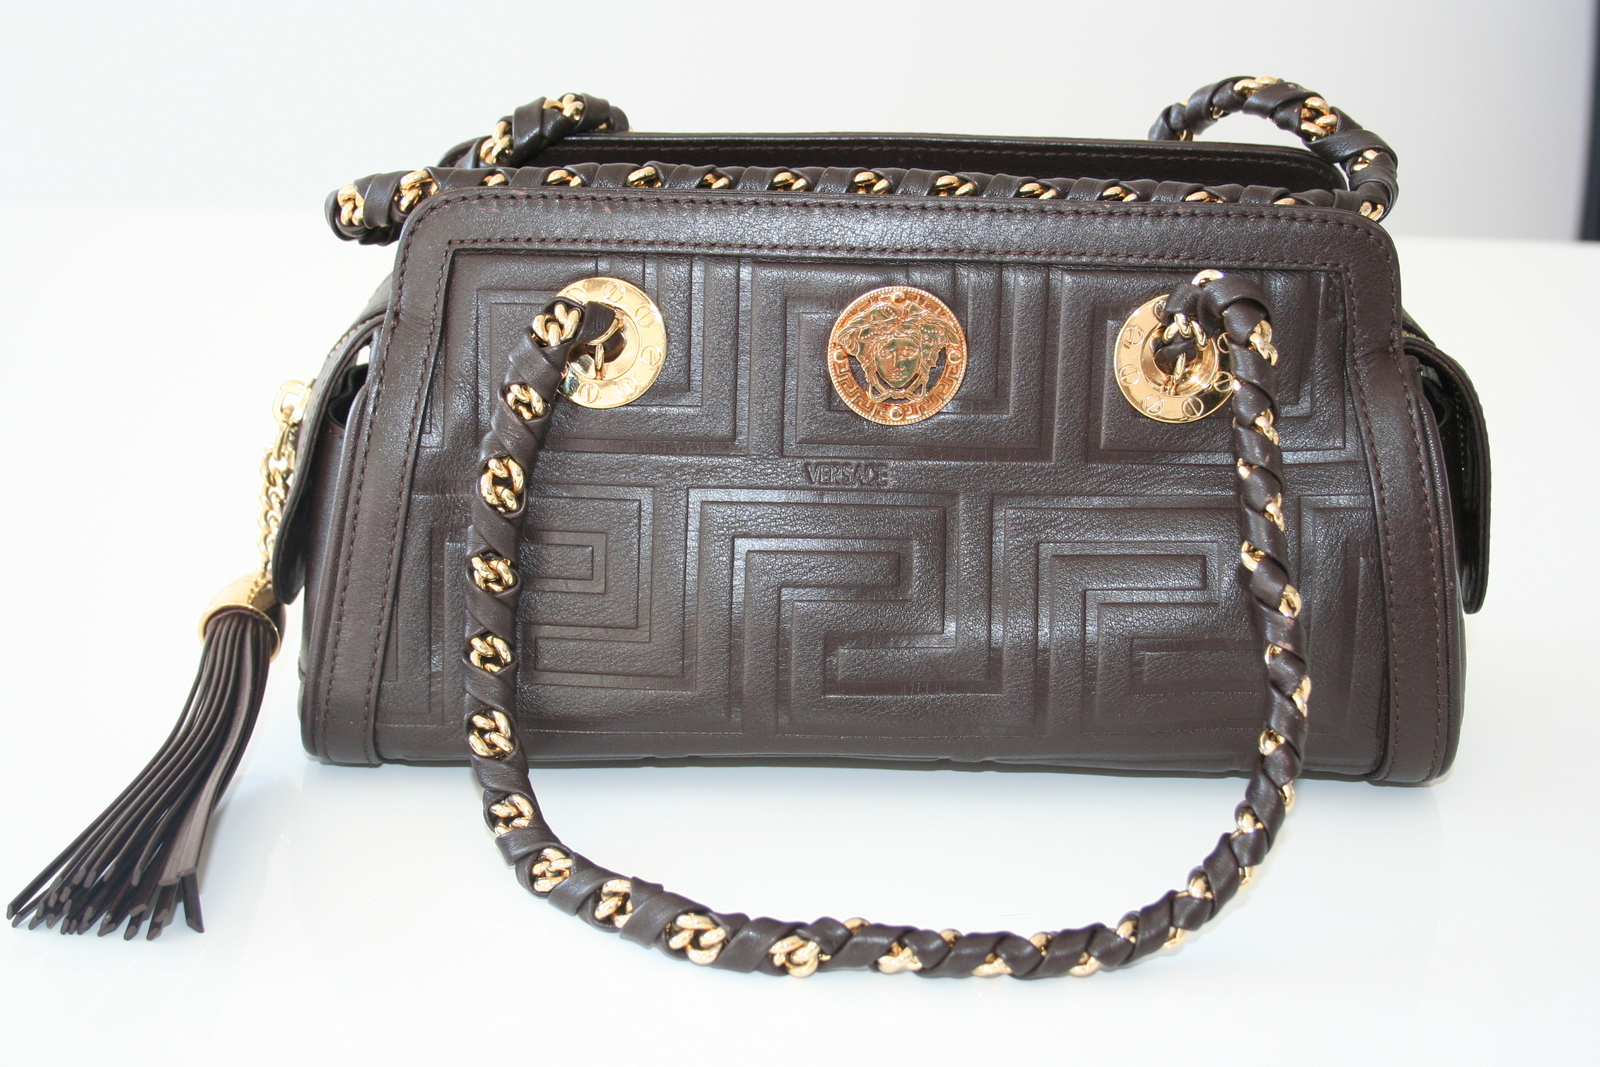 Primary image for Versace Brown Leather Medusa Bowling Bag